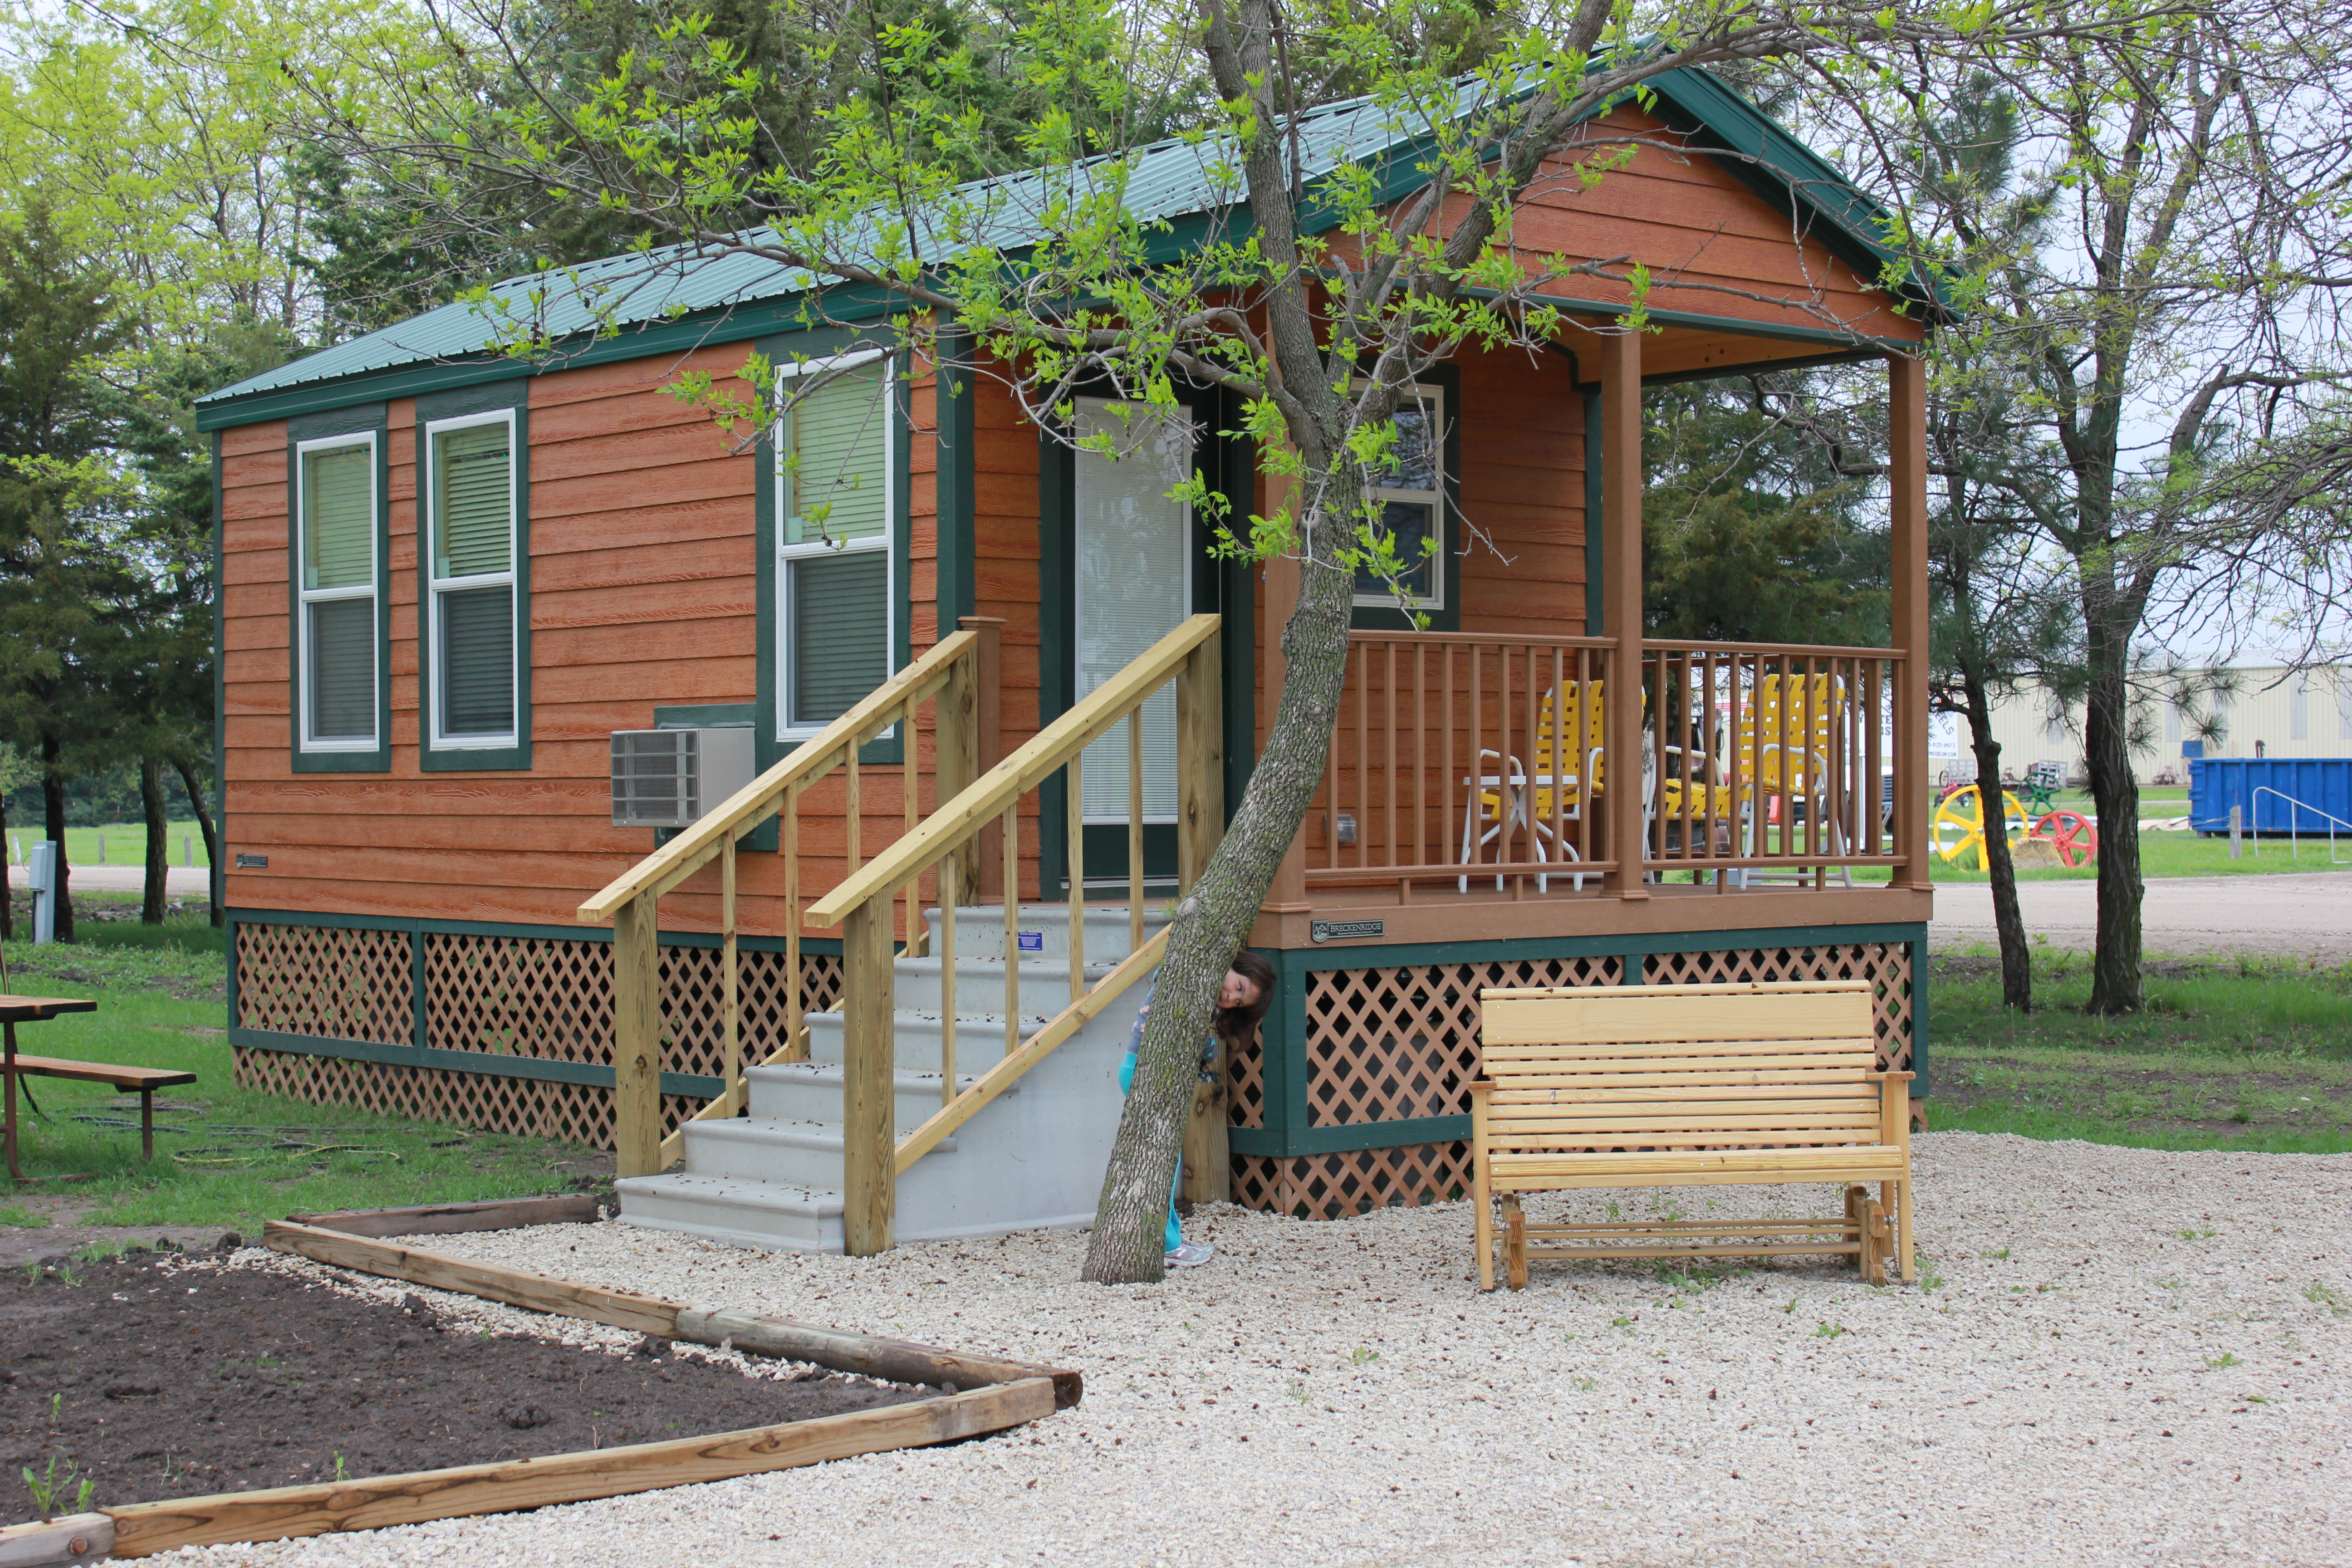 to document cabins in front acorns official county geary a cabin rentals log cvb documentid rv resort entrance campground kansas